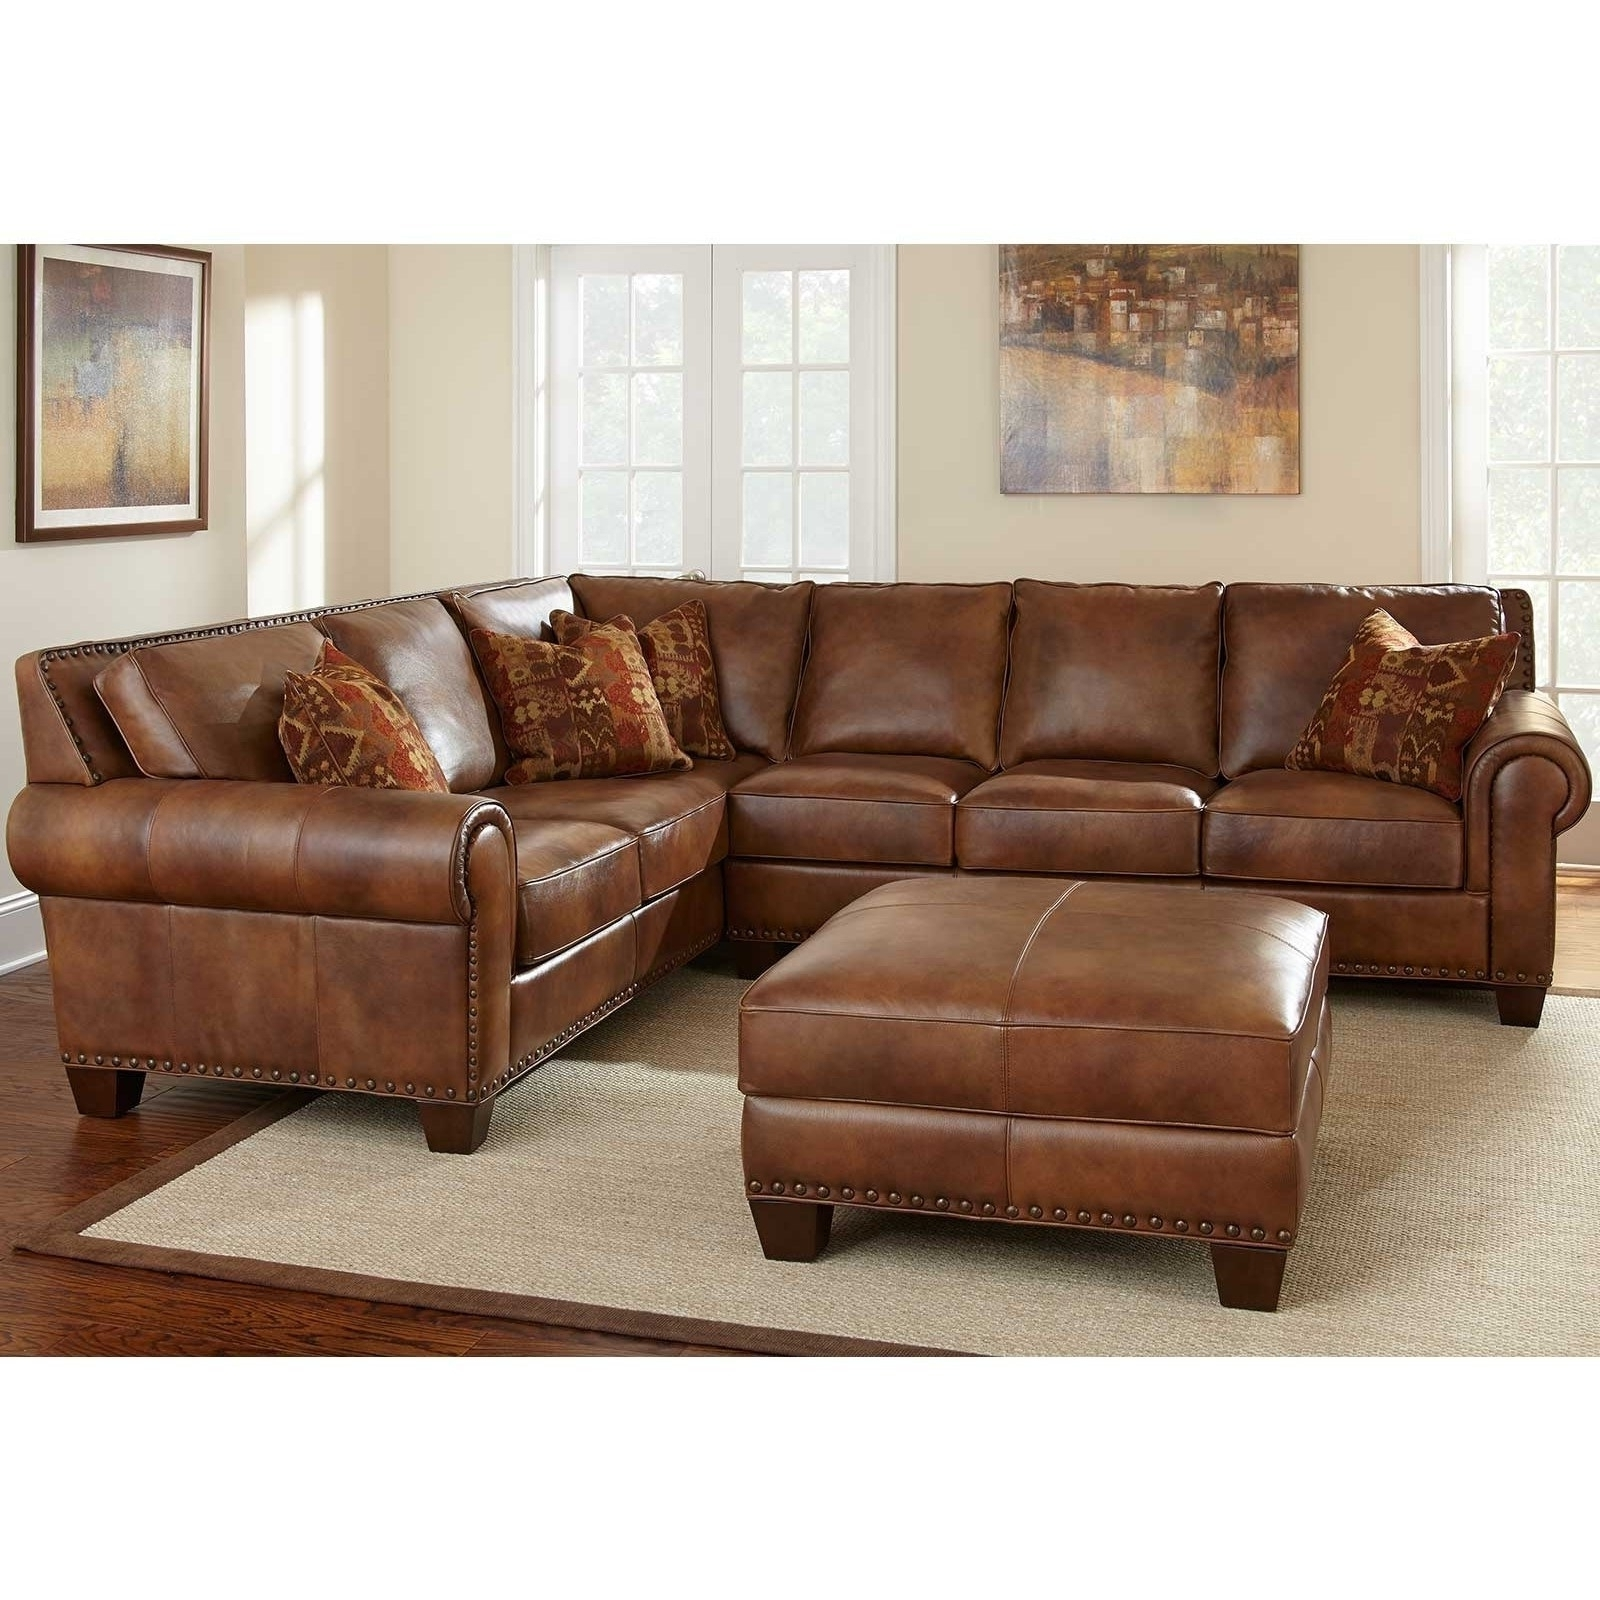 Macys Leather Sectional Sofas Pertaining To Popular White Leather Sectional Sofa Macy's • Leather Sofa (View 12 of 20)